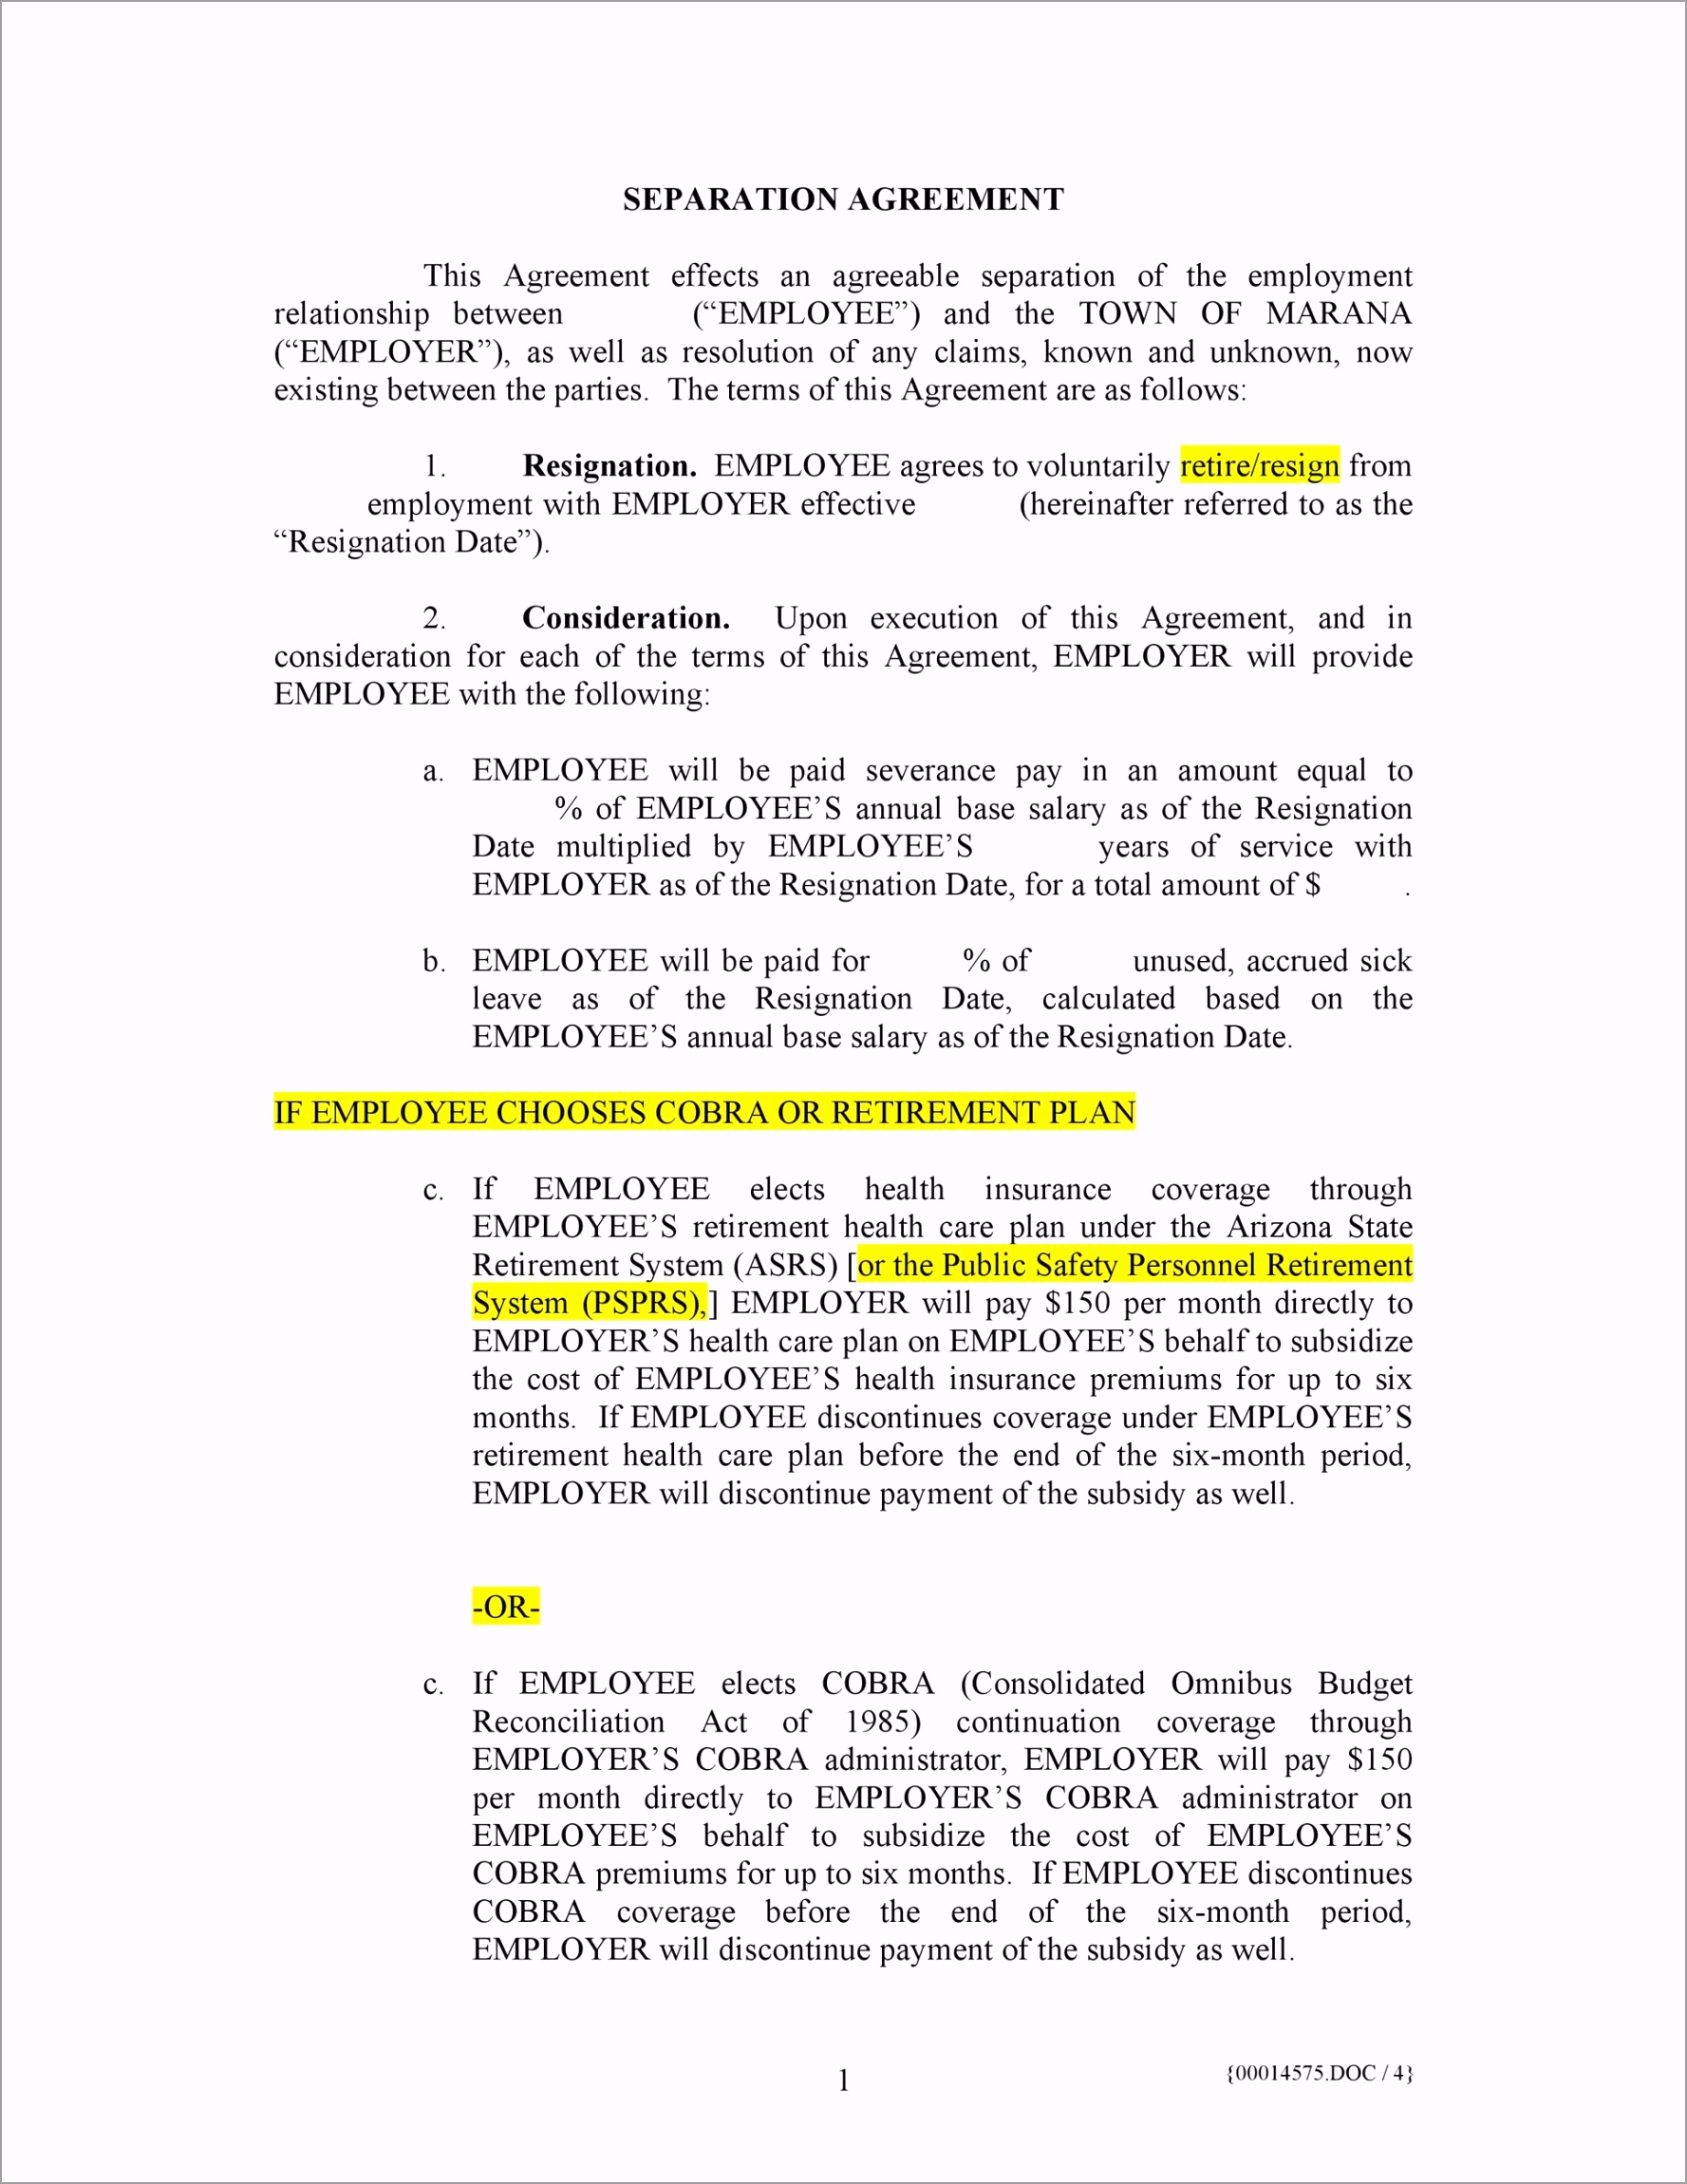 Separation Agreement Template 04 atbeo